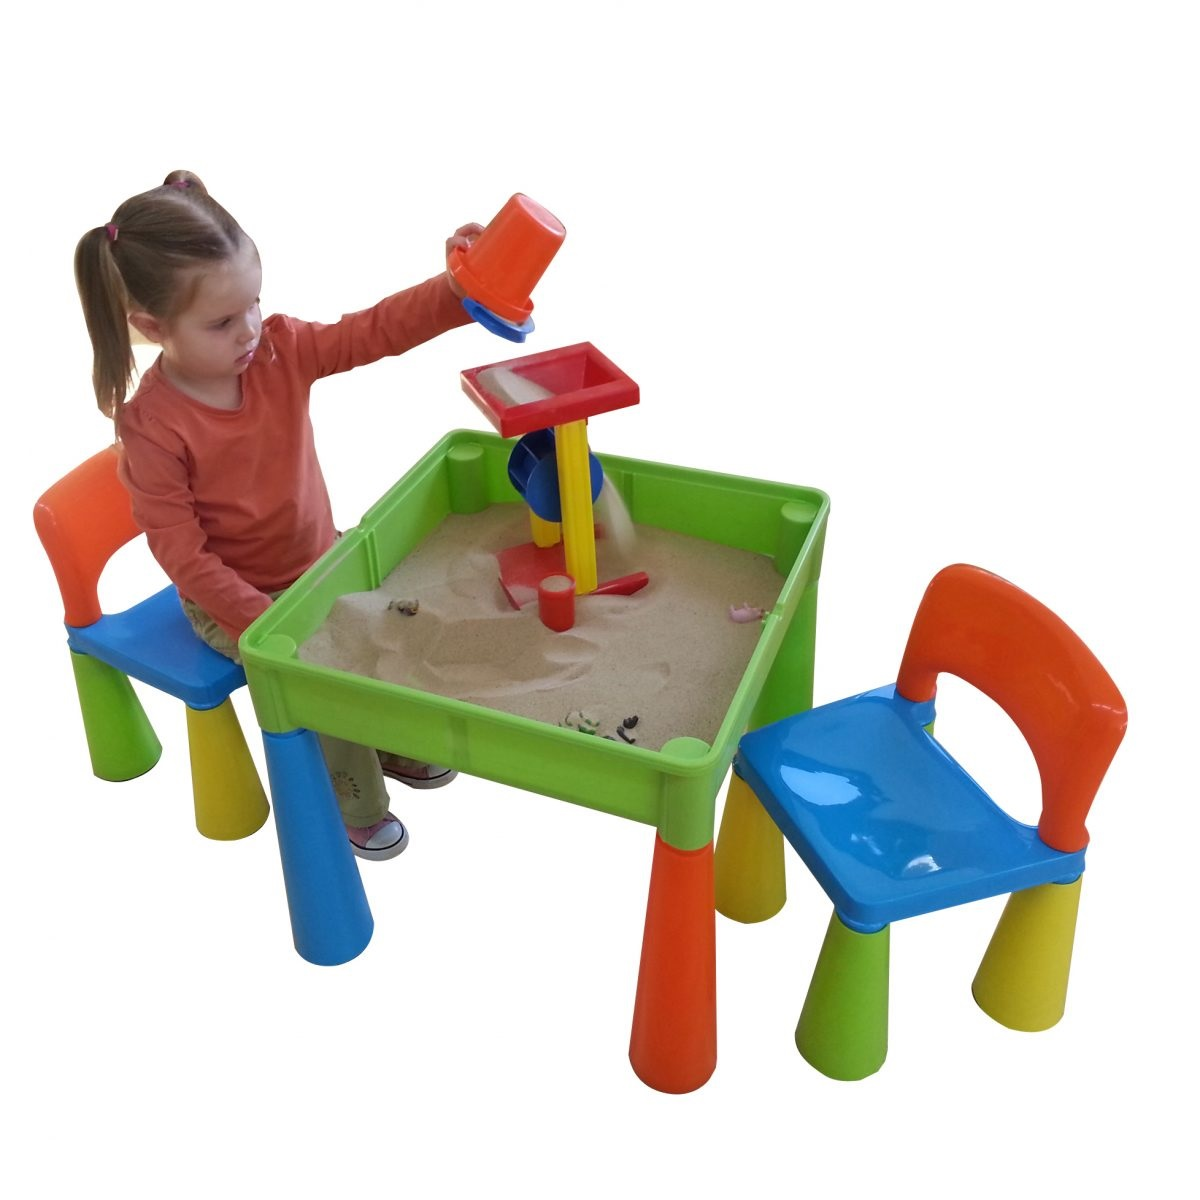 2884ae14d7f3 Liberty House Toys - 5 in 1 Multipurpose Activity Table   2 Chairs ...